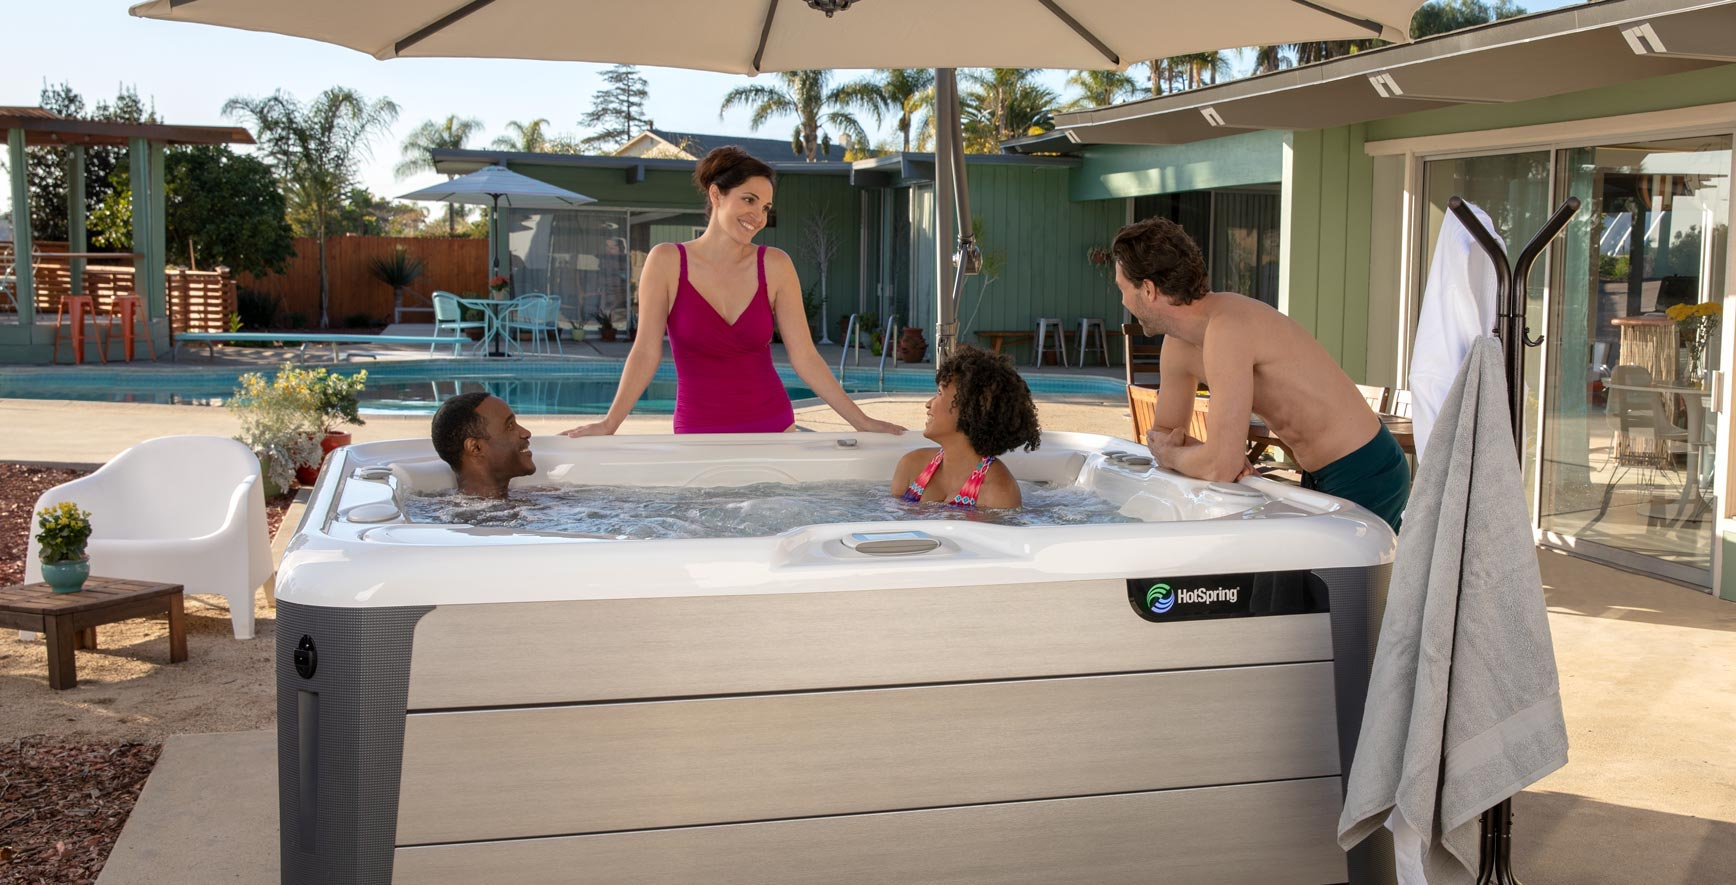 Find Hot Tubs For Sale Near Me and Find an Experience to Last a Lifetime